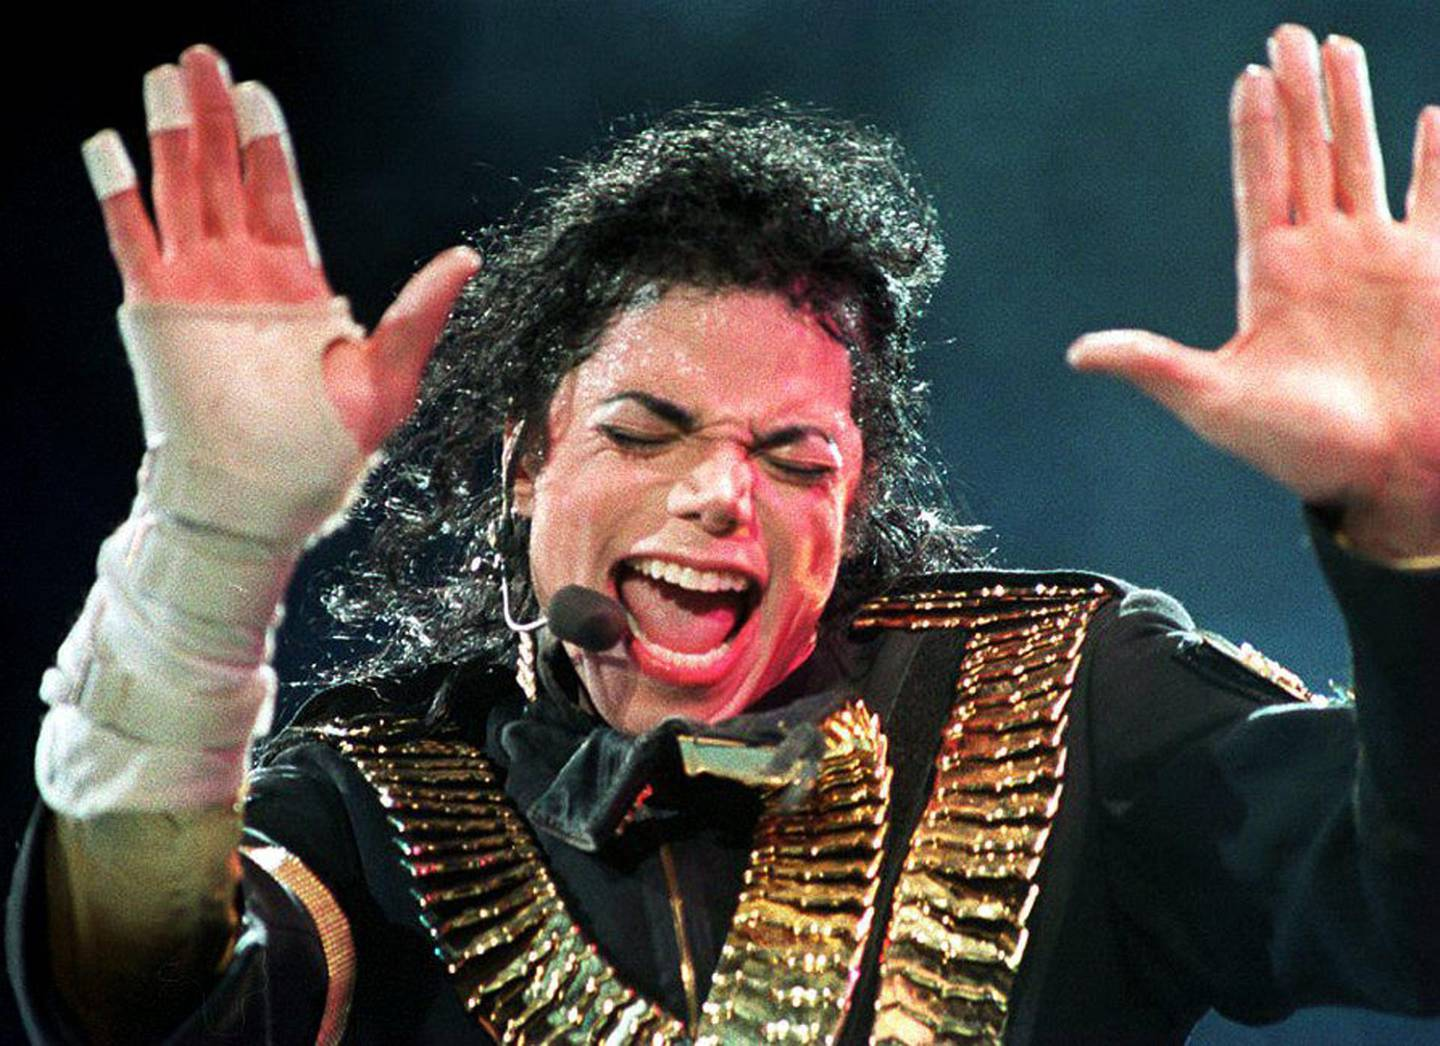 """(FILES) In this file photo taken on August 31, 1993, US pop megastar Michael Jackson performs during his """"Dangerous"""" tour in Singapore.   An unflinching new documentary on pedophilia accusations against Michael Jackson shatters the veneer of his larger-than-life celebrity, presenting in stark, lurid detail the stories of two men who say the late King of Pop for years sexually abused them as minors. / AFP / STR"""